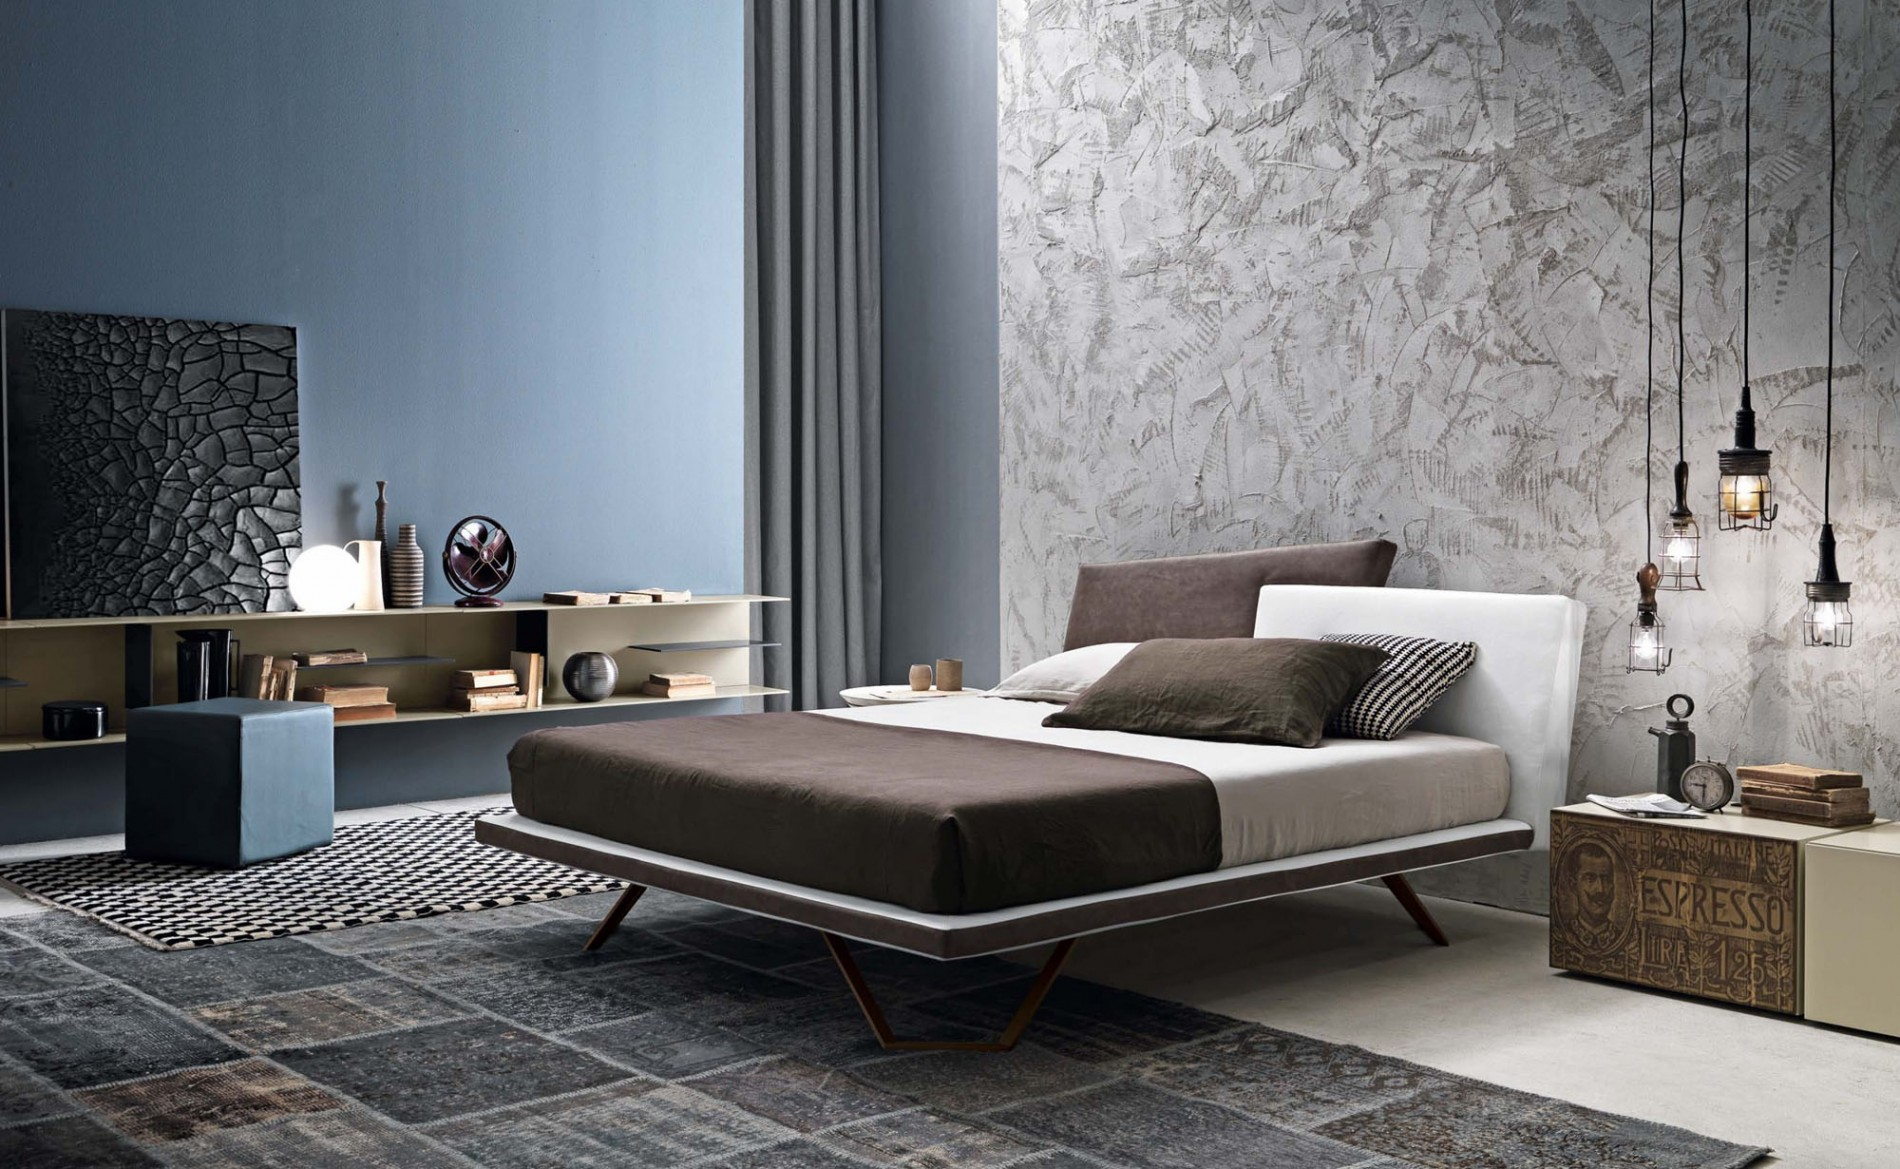 Meeting presotto bed lartdevivre online furnishing for Letto presotto